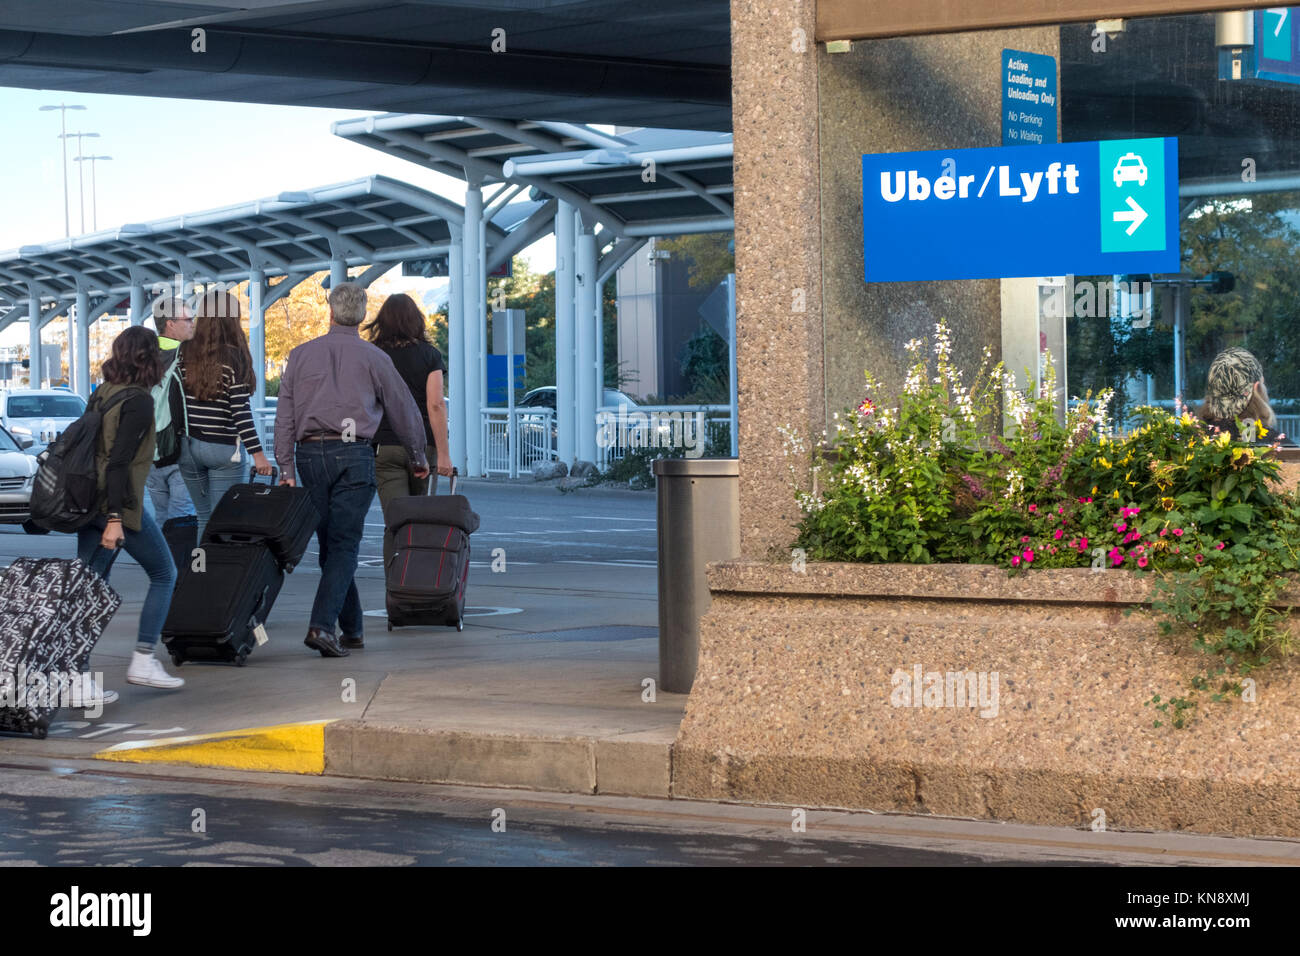 Lyft Uber taxi rank sign at Salt Lake City International Airport. Passengers with luggage. - Stock Image